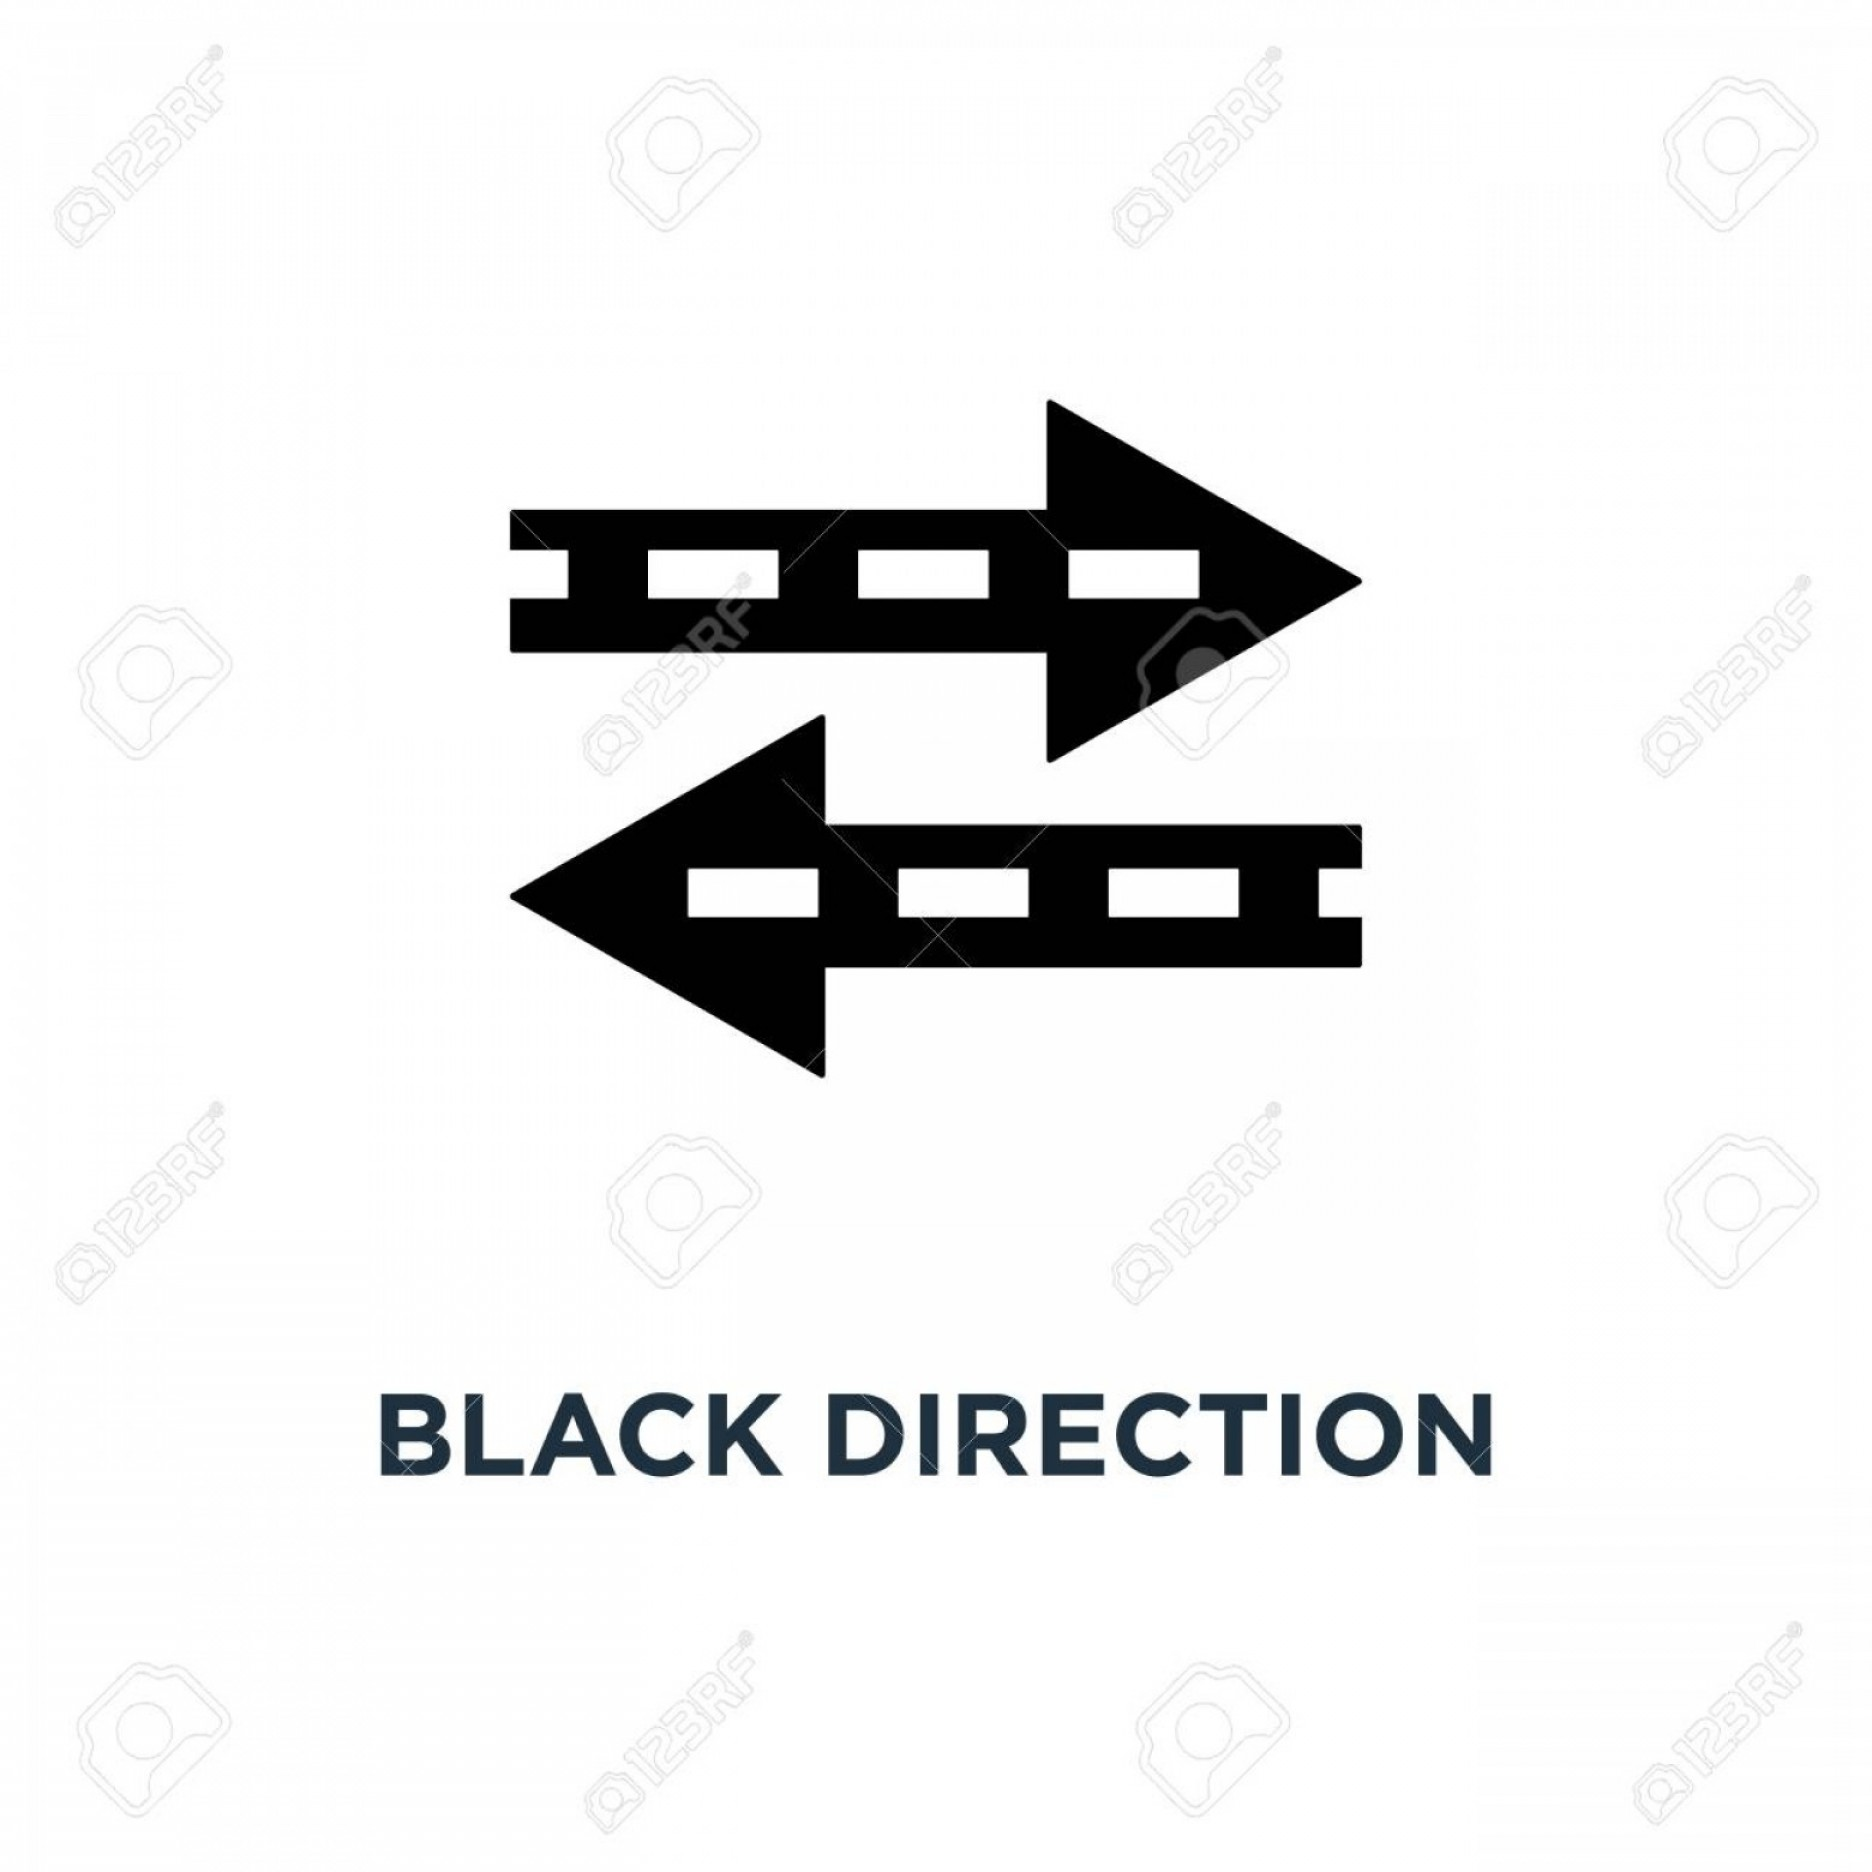 Recap Arrow Vectors: Photostock Vector Black Direction Arrow Like Transfer Icon Symbol Of Info Fast Transference For Website And Abstract T